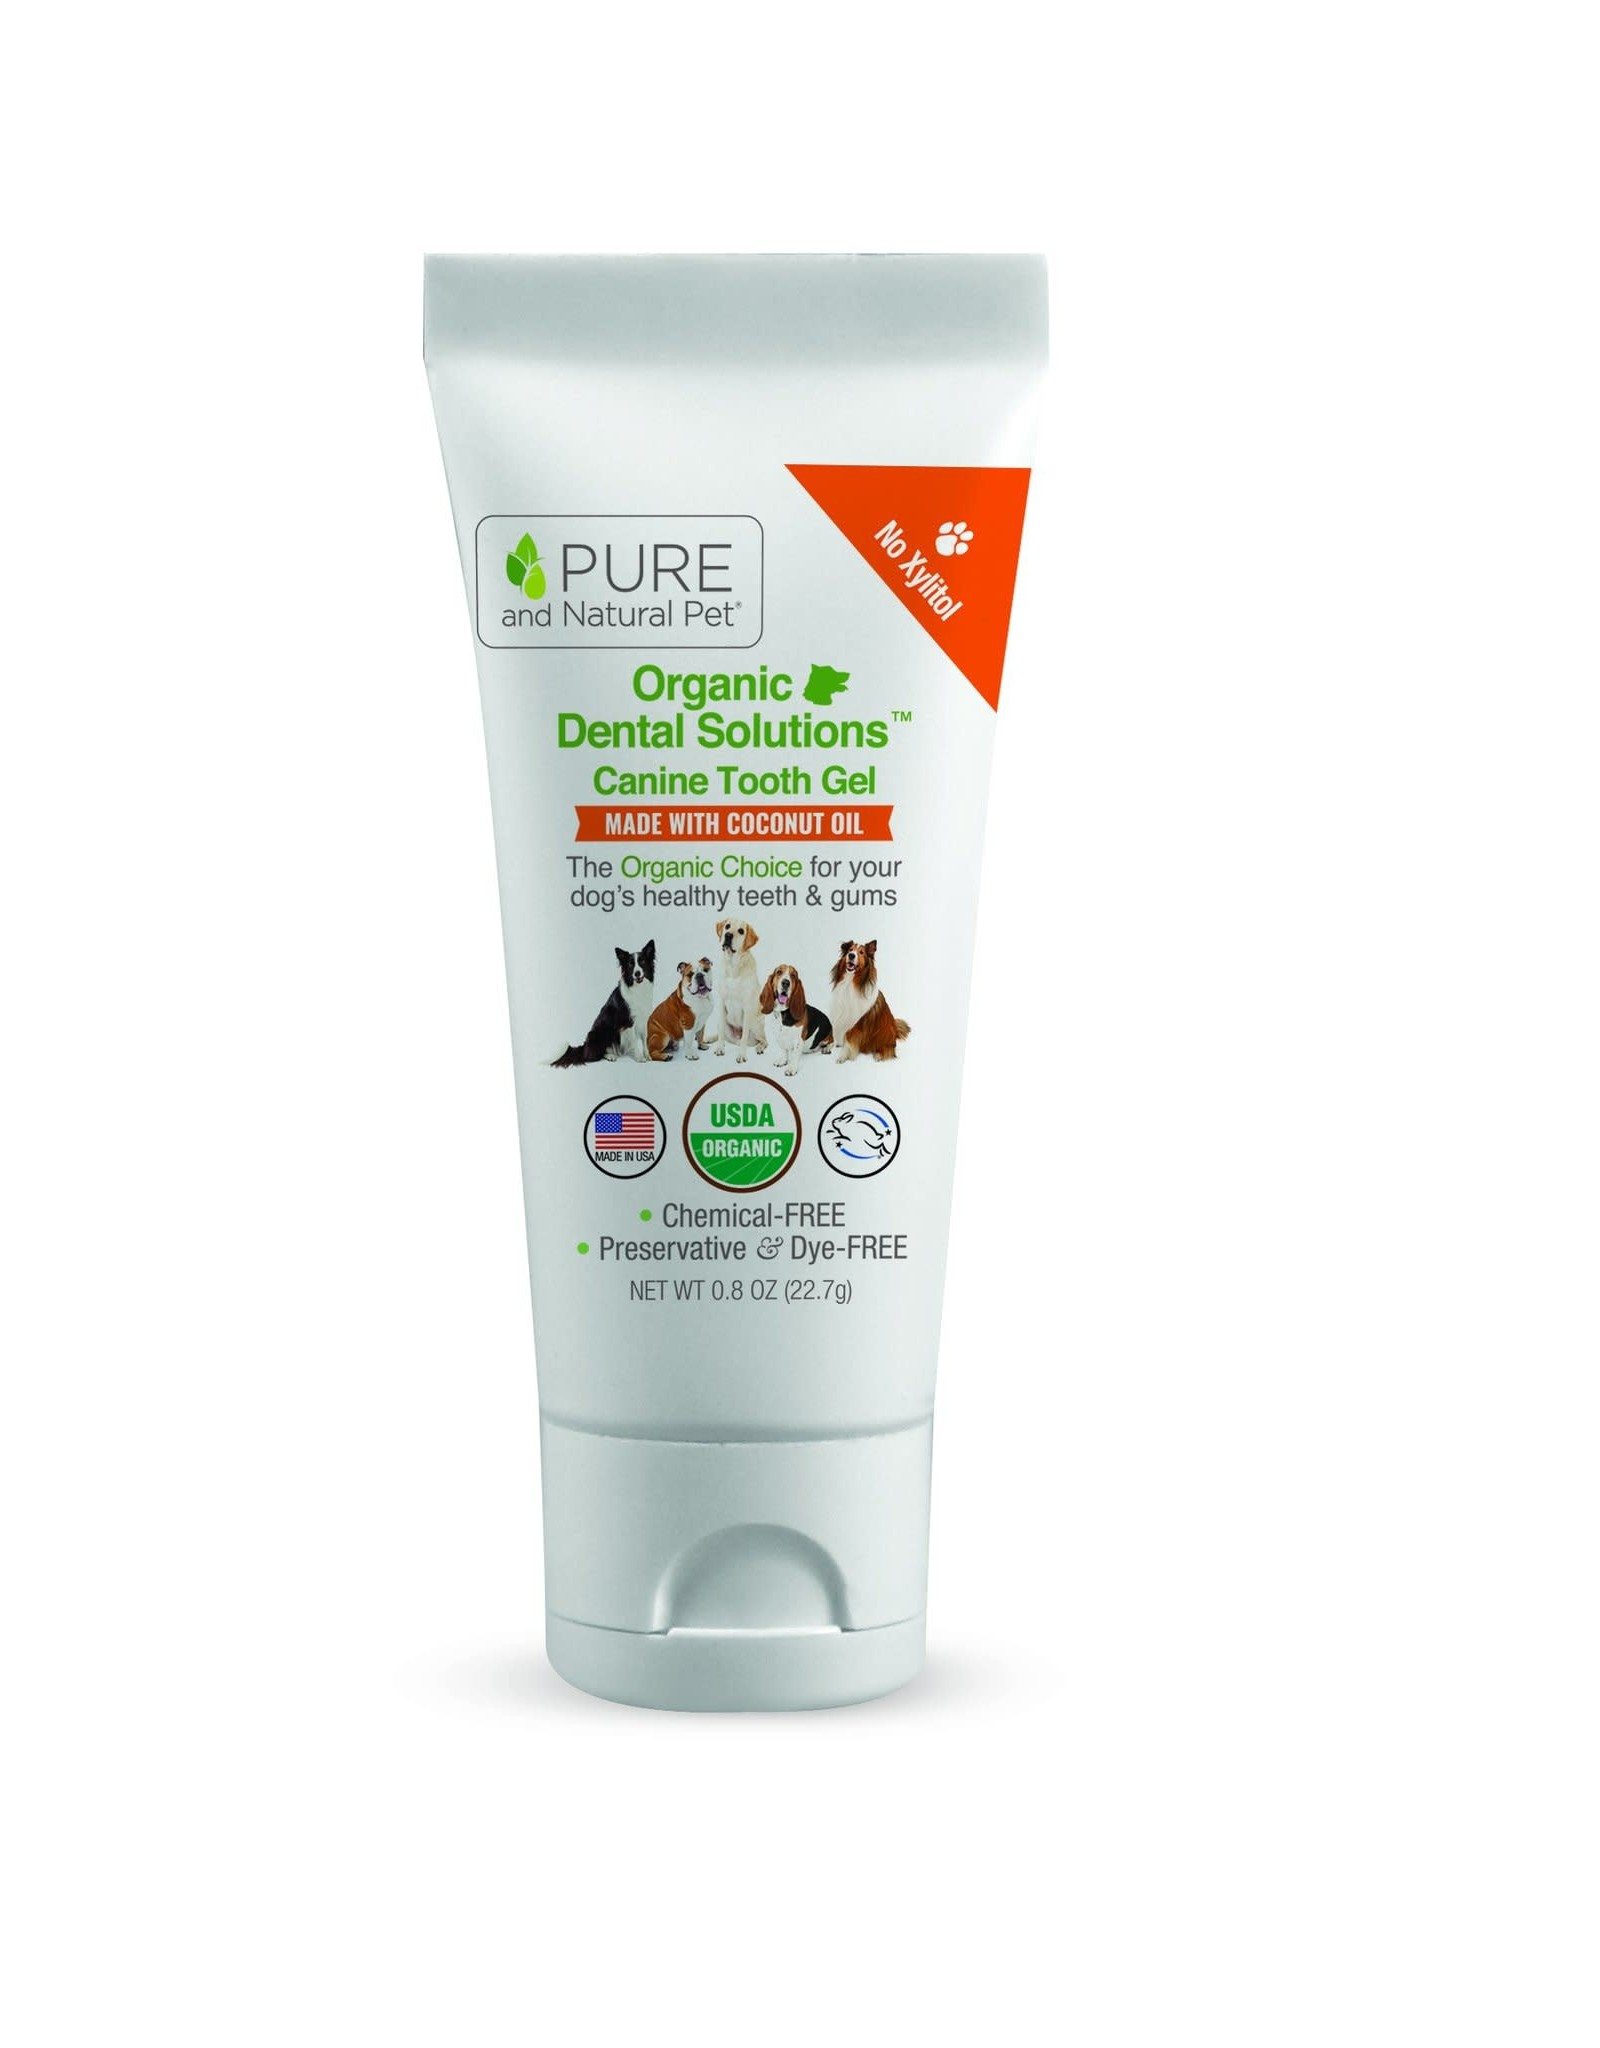 Pure and Natural Pet Canine ToothGel and Toothbrush